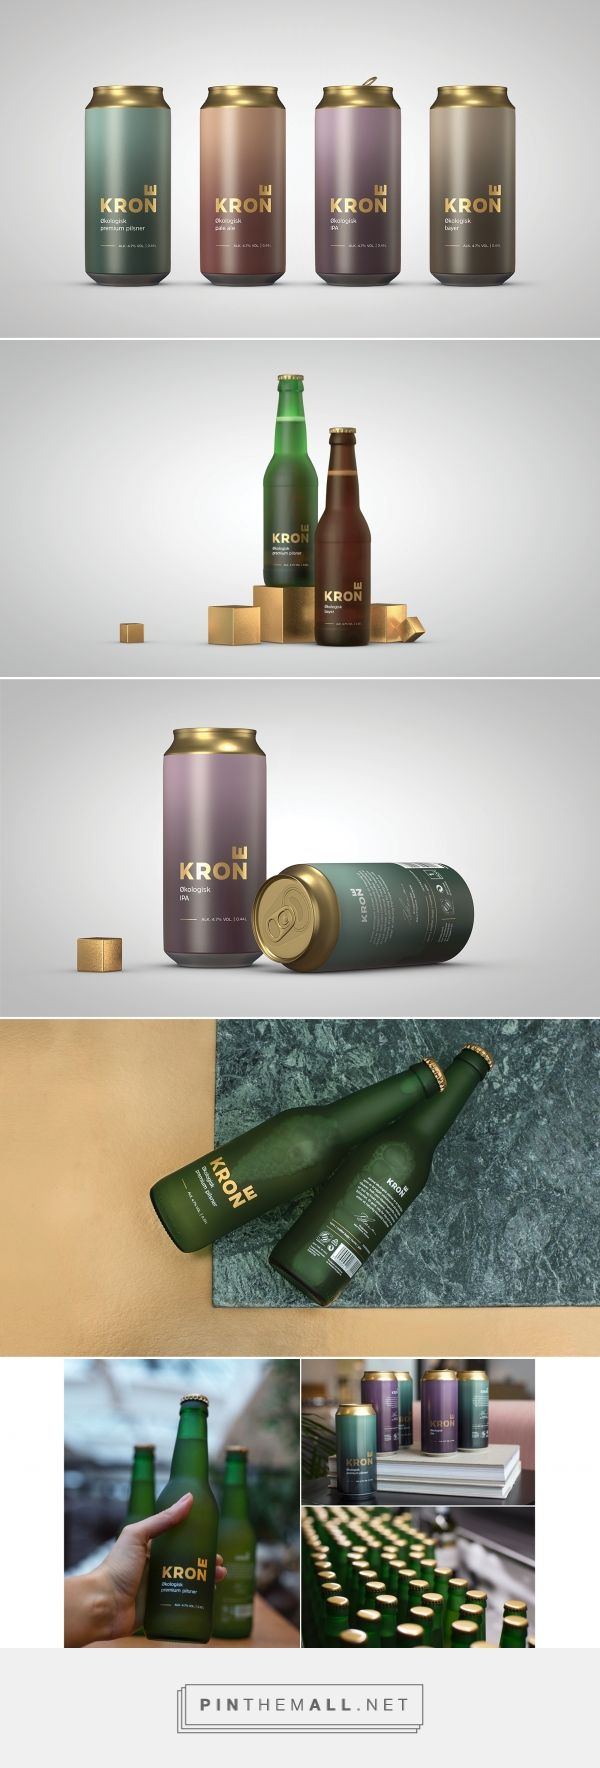 Interesting color and texture treatment. Krone (Crown) Beer by Kristina Nyjordet, Marc Ligeti, Thor Erik Ramlethon, Creuna Norway and Sindre Dahl. Source: Behance. Pin curated by #SFields99 #packaging #design #ideas #inspiration #product #branding #creative #consumer #beer #alcoholic #beverages #bottle #can